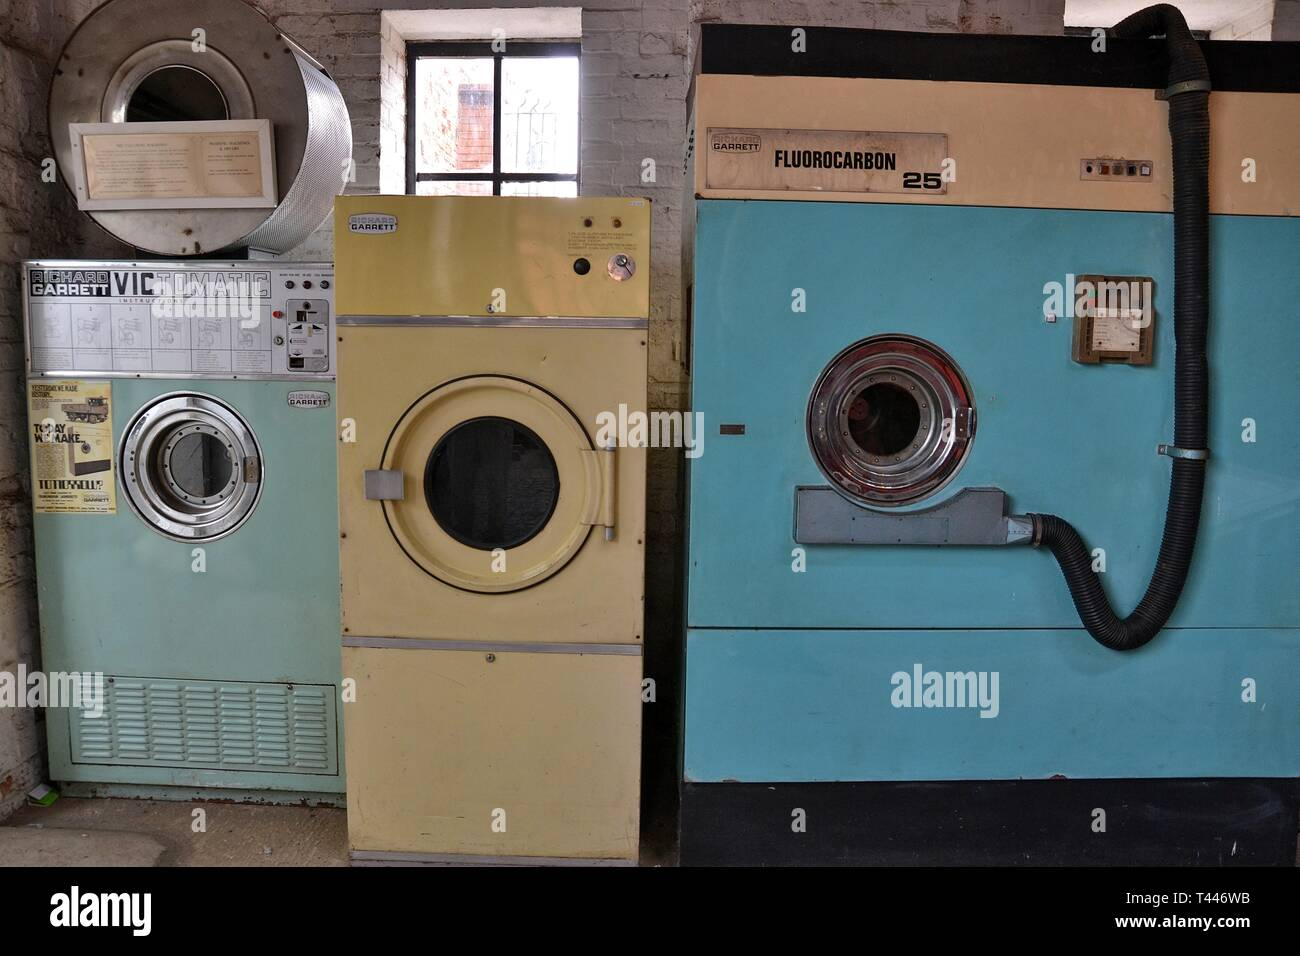 Dry cleaning machines at the Long Shop Museum, Leiston, Suffolk, UK. They were made in the factory at one time. - Stock Image